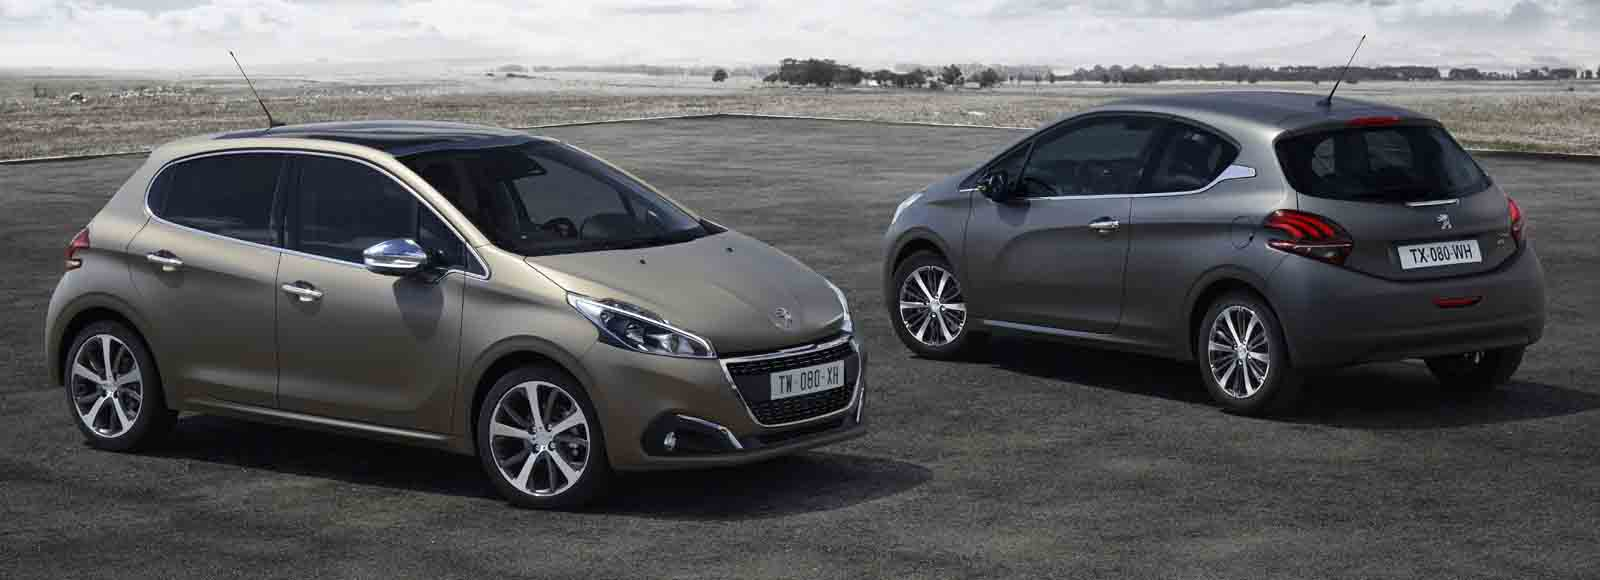 peugeot-208-facelift-textured-colour-e1427703273124